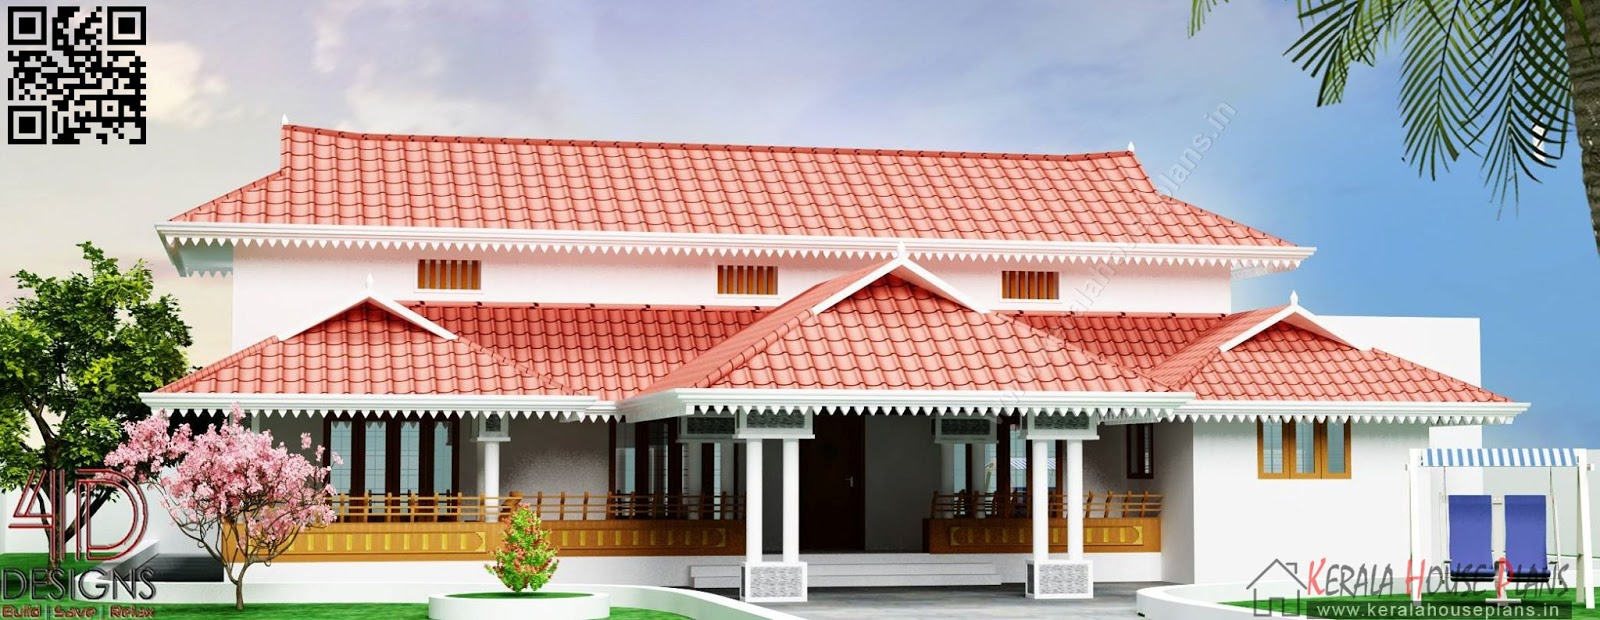 Kerala Traditional Home Design Elevation And Floor Details